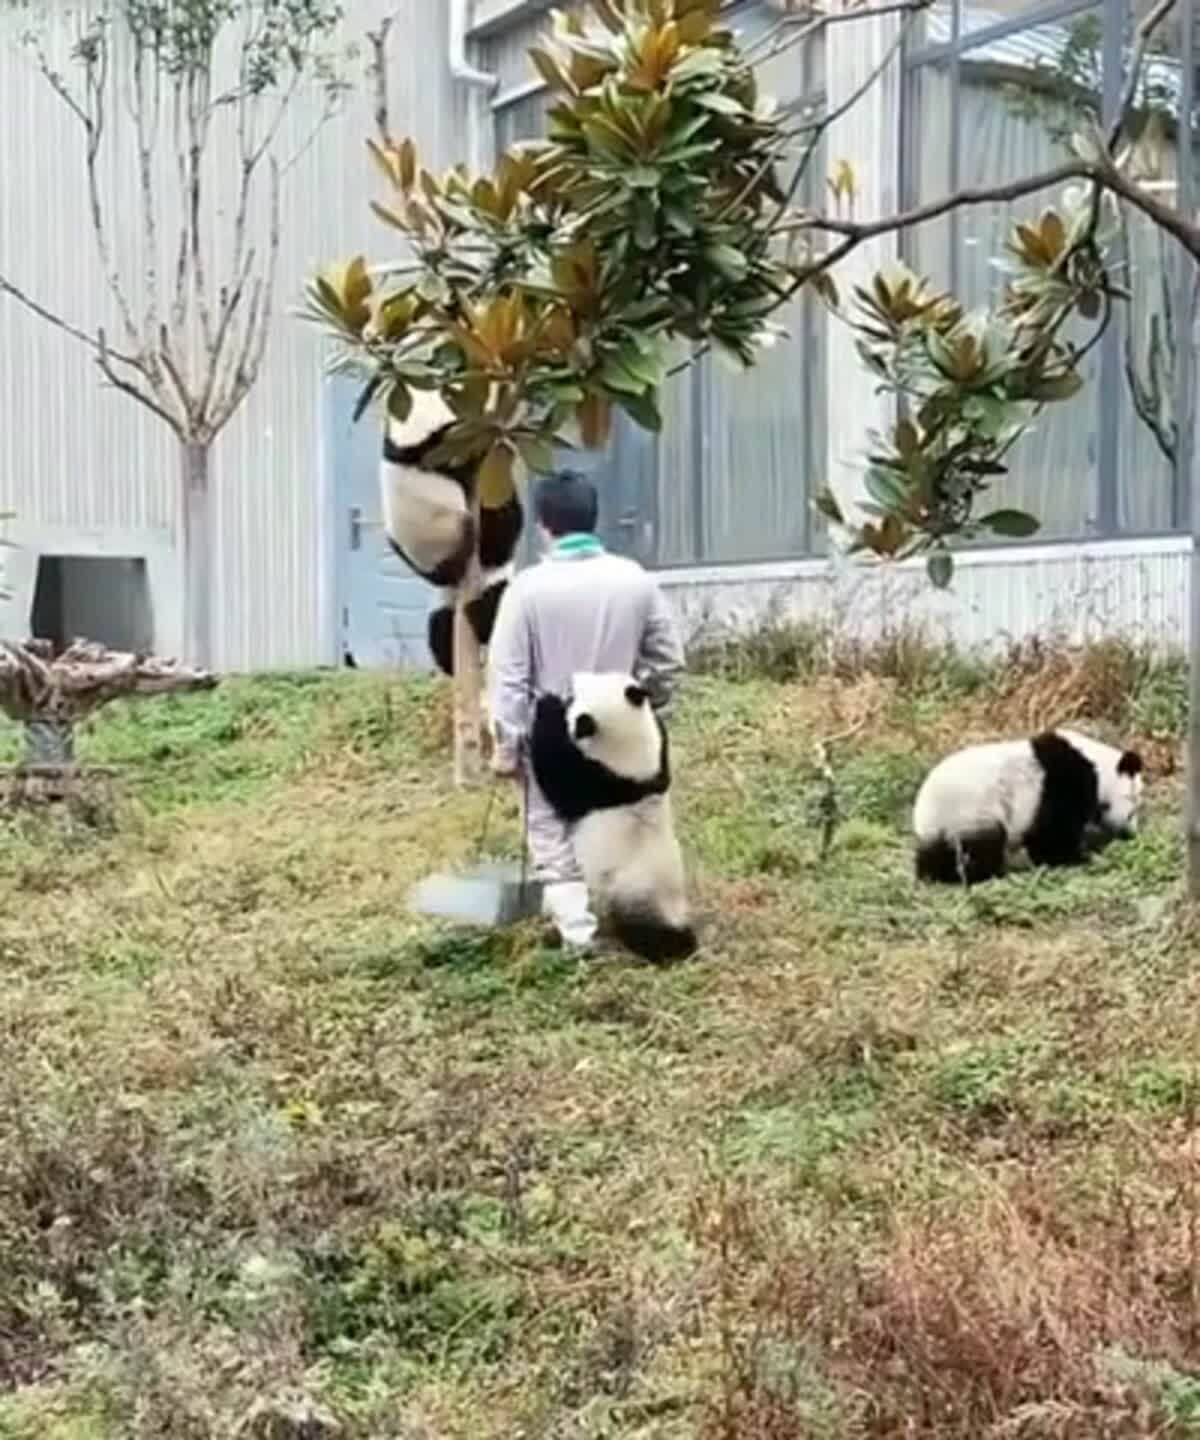 Group of pandas kidnapping an innocent person Funny